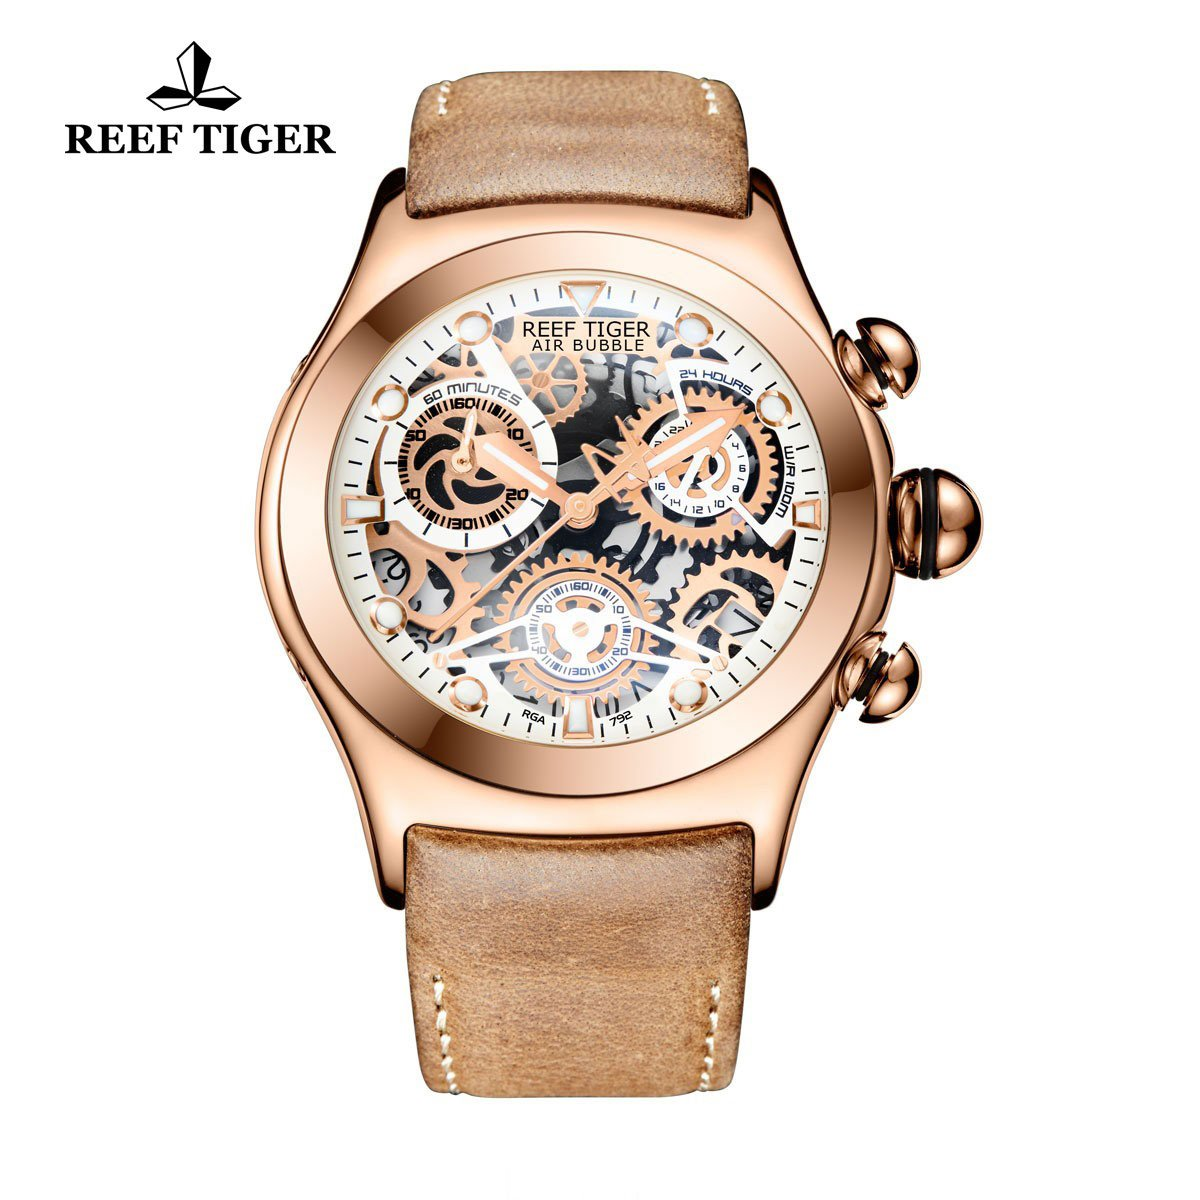 Reef Tiger Chronograph Sport Watch with Date Rose Gold White Skeleton Dial Luminous Watches RGA792